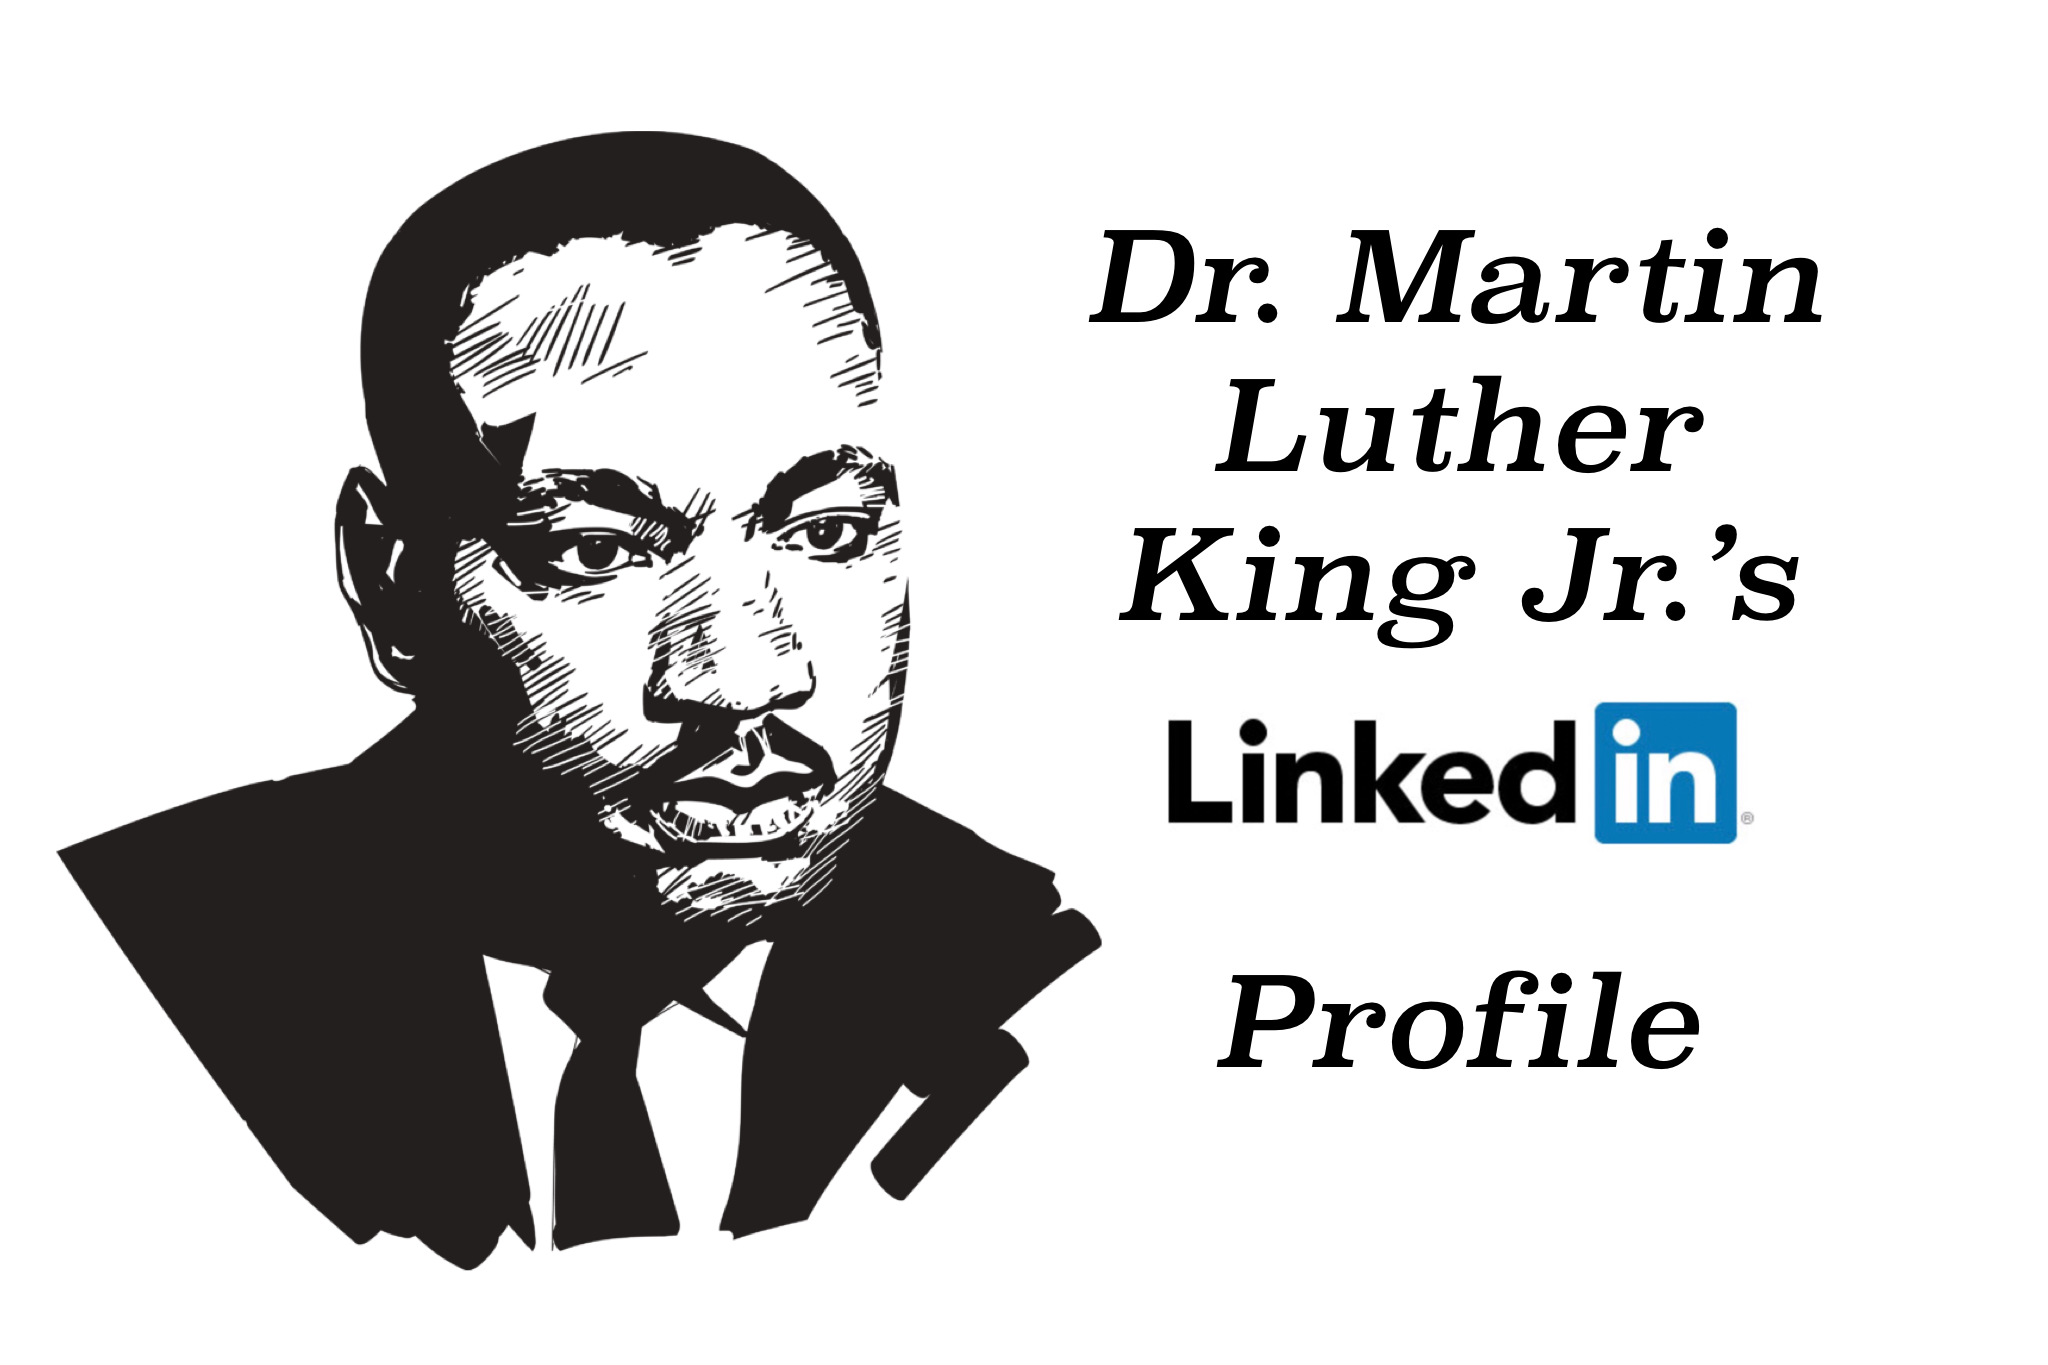 Martin Luther King's LinkedIn Profile & MLK Day Activities